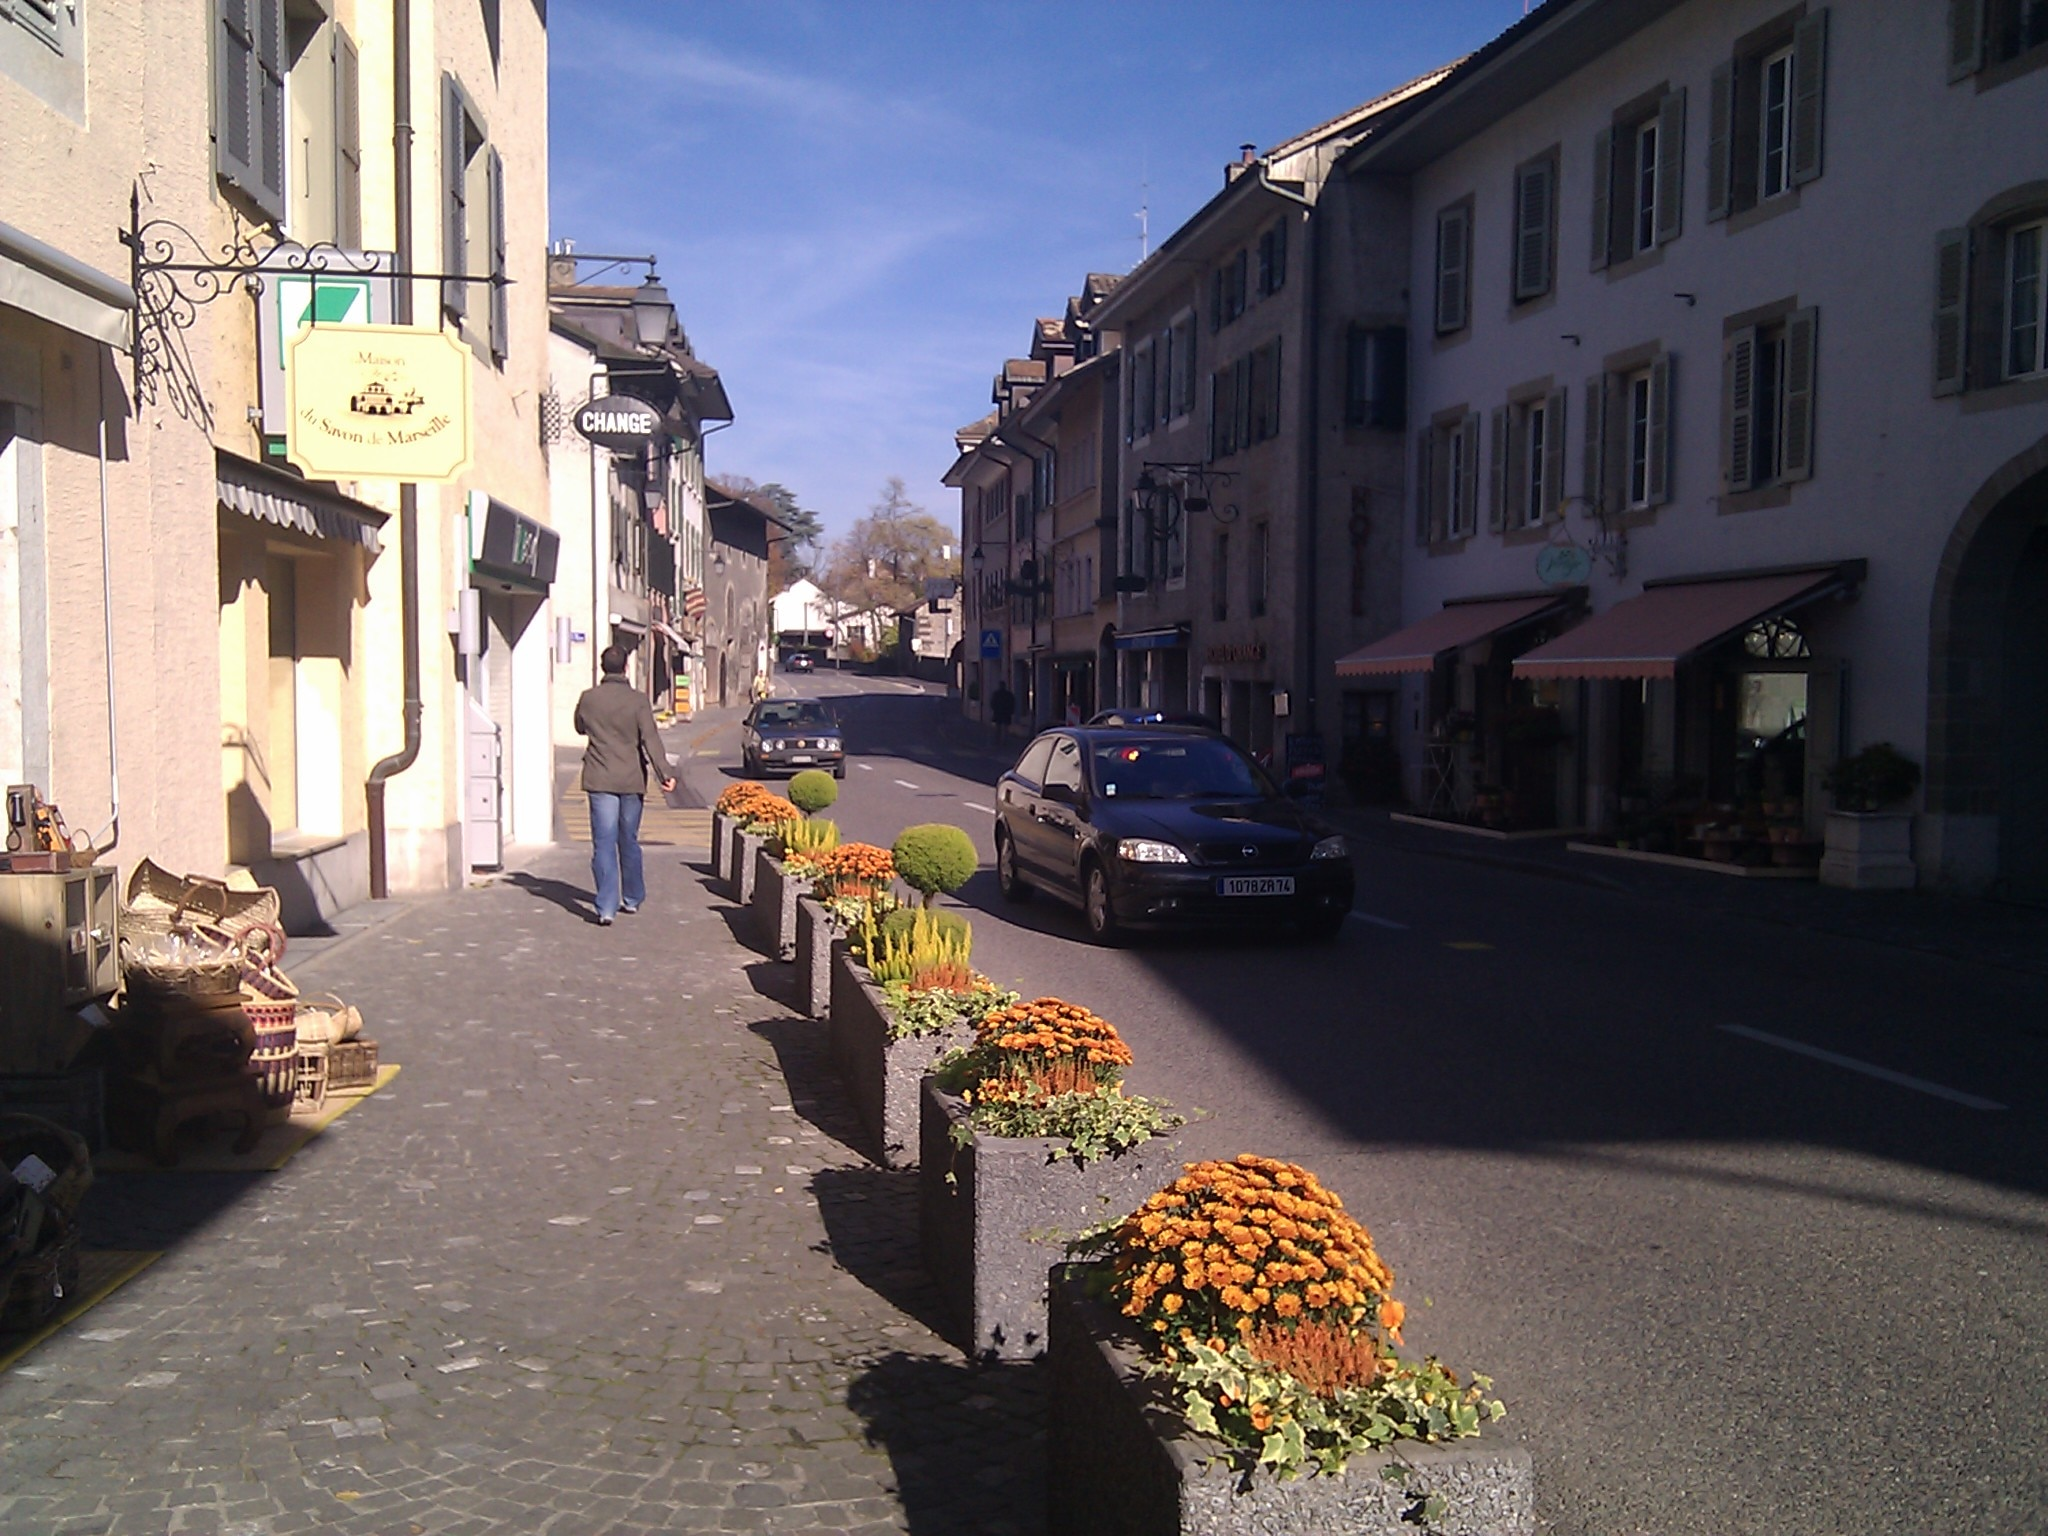 Street scene in Coppet.